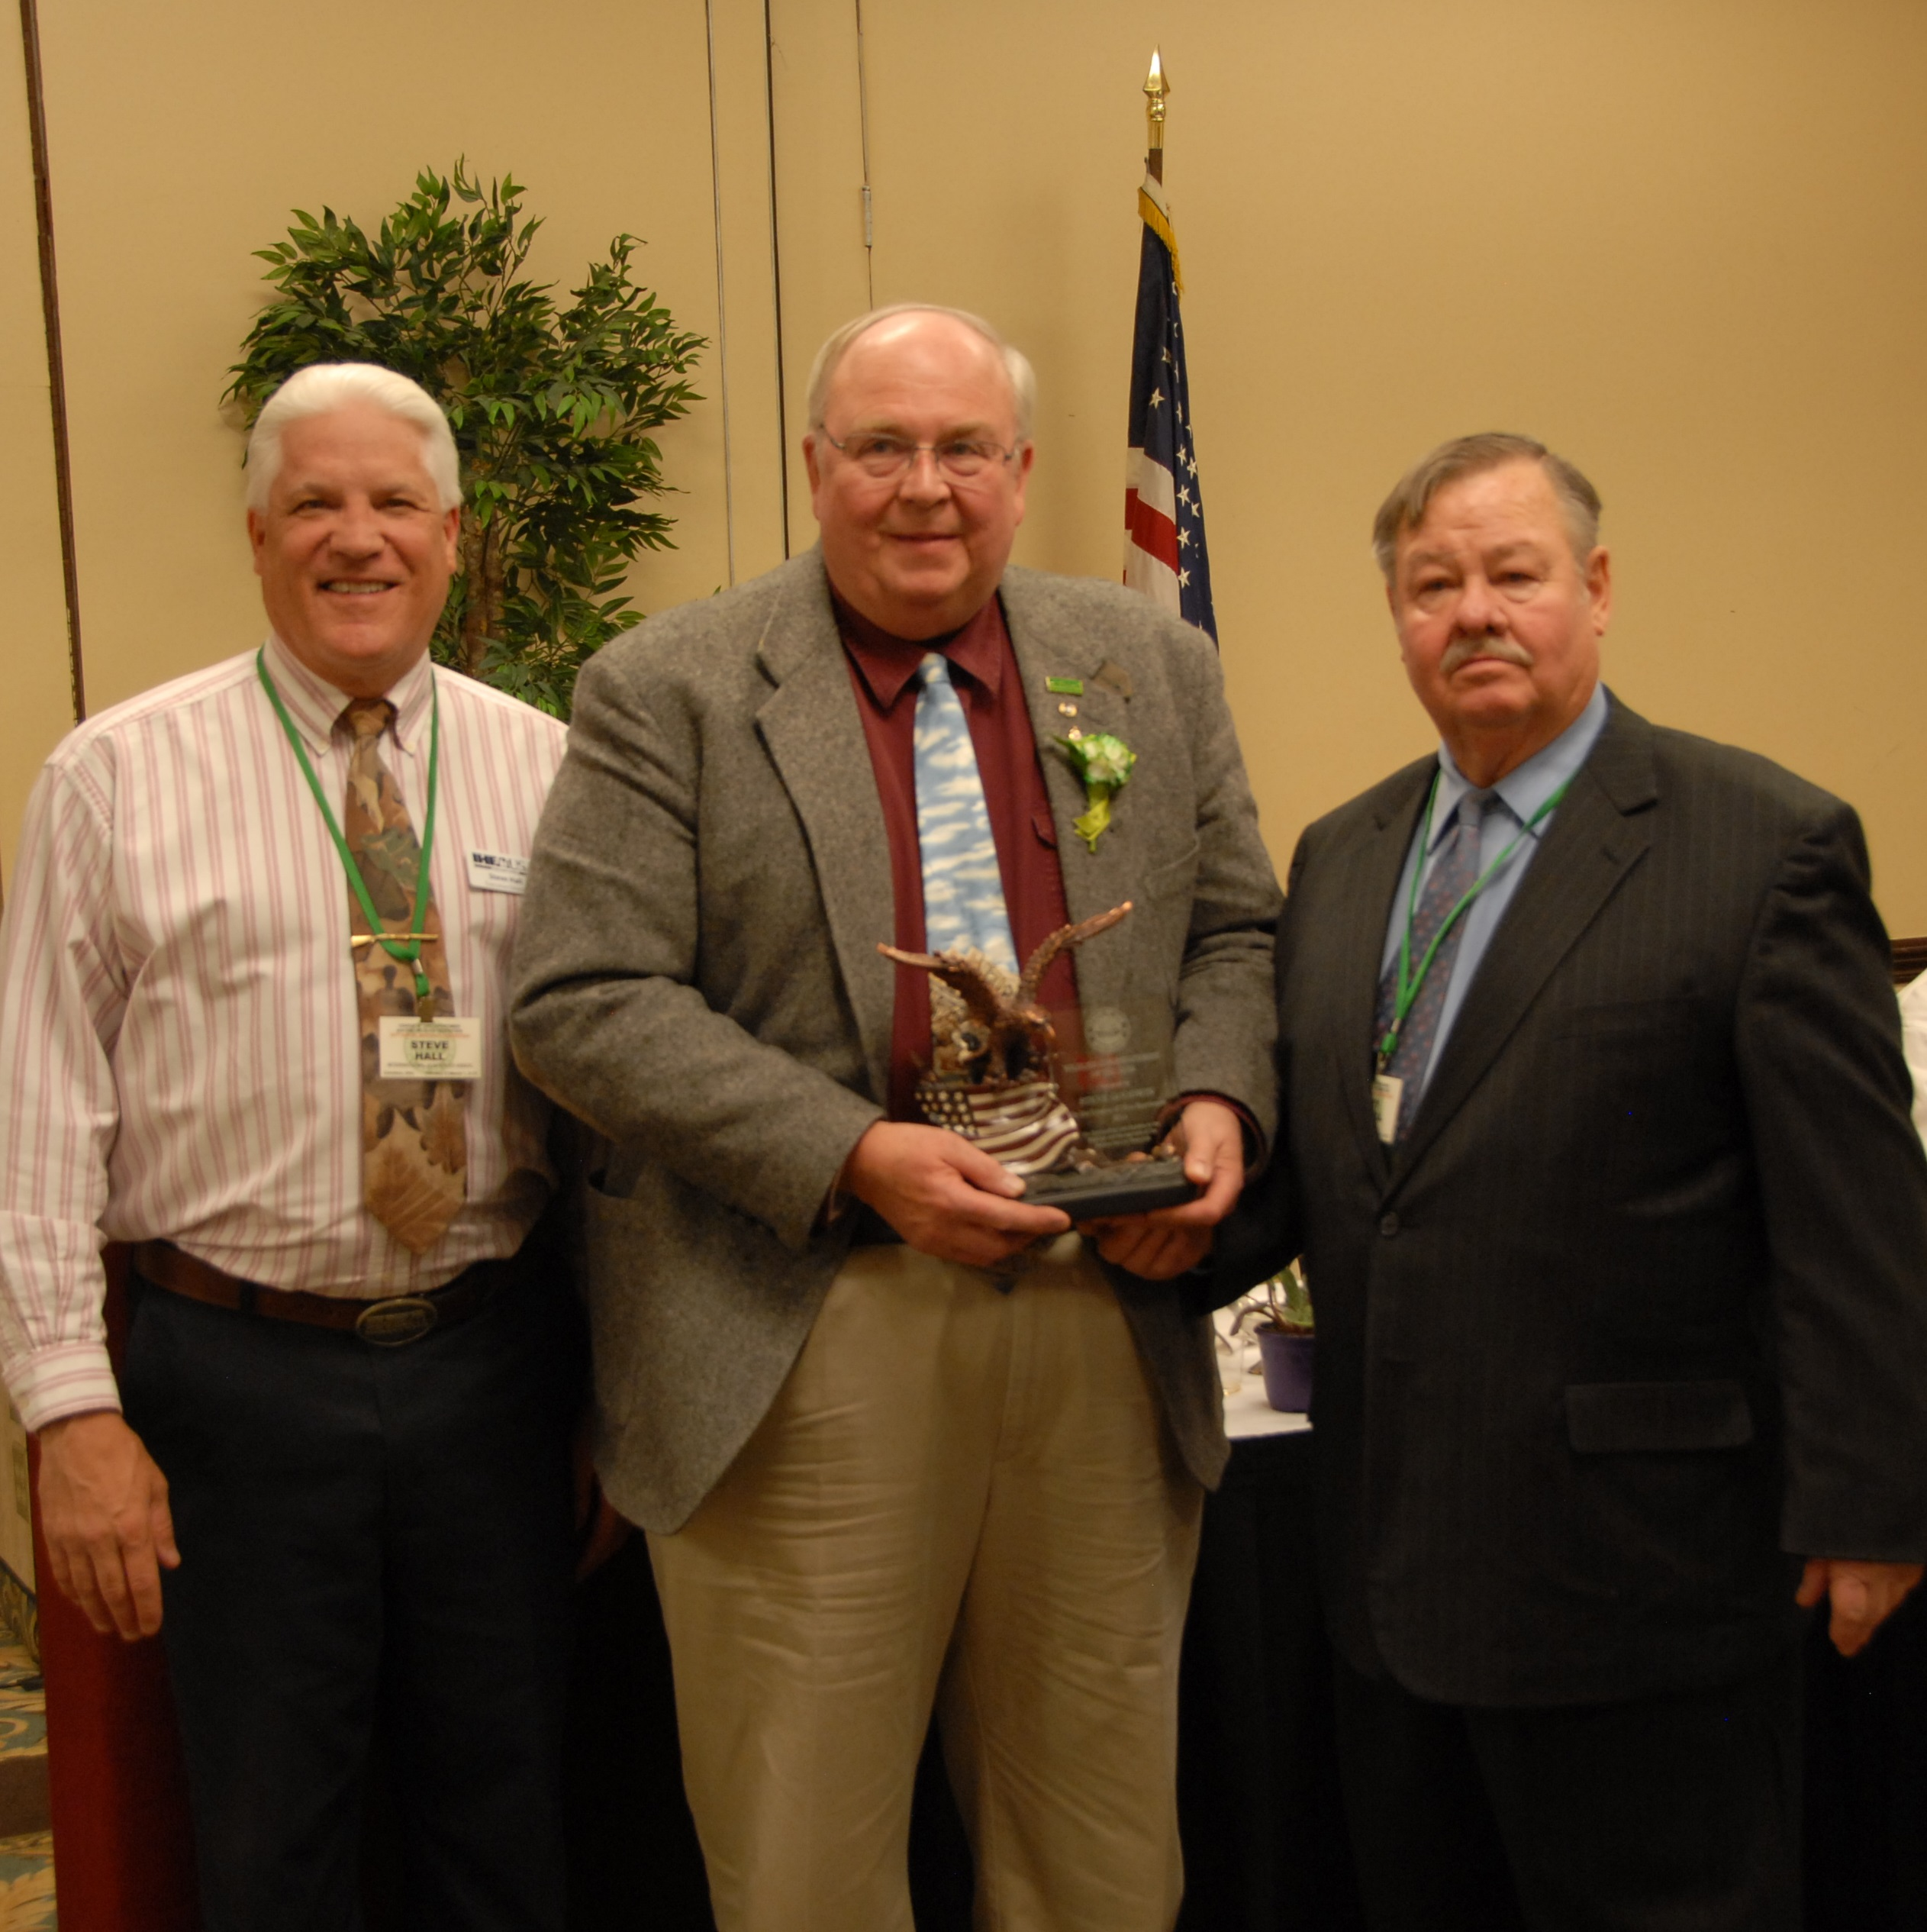 Steve Goodwin recognized with Wildlife Conservationist Award